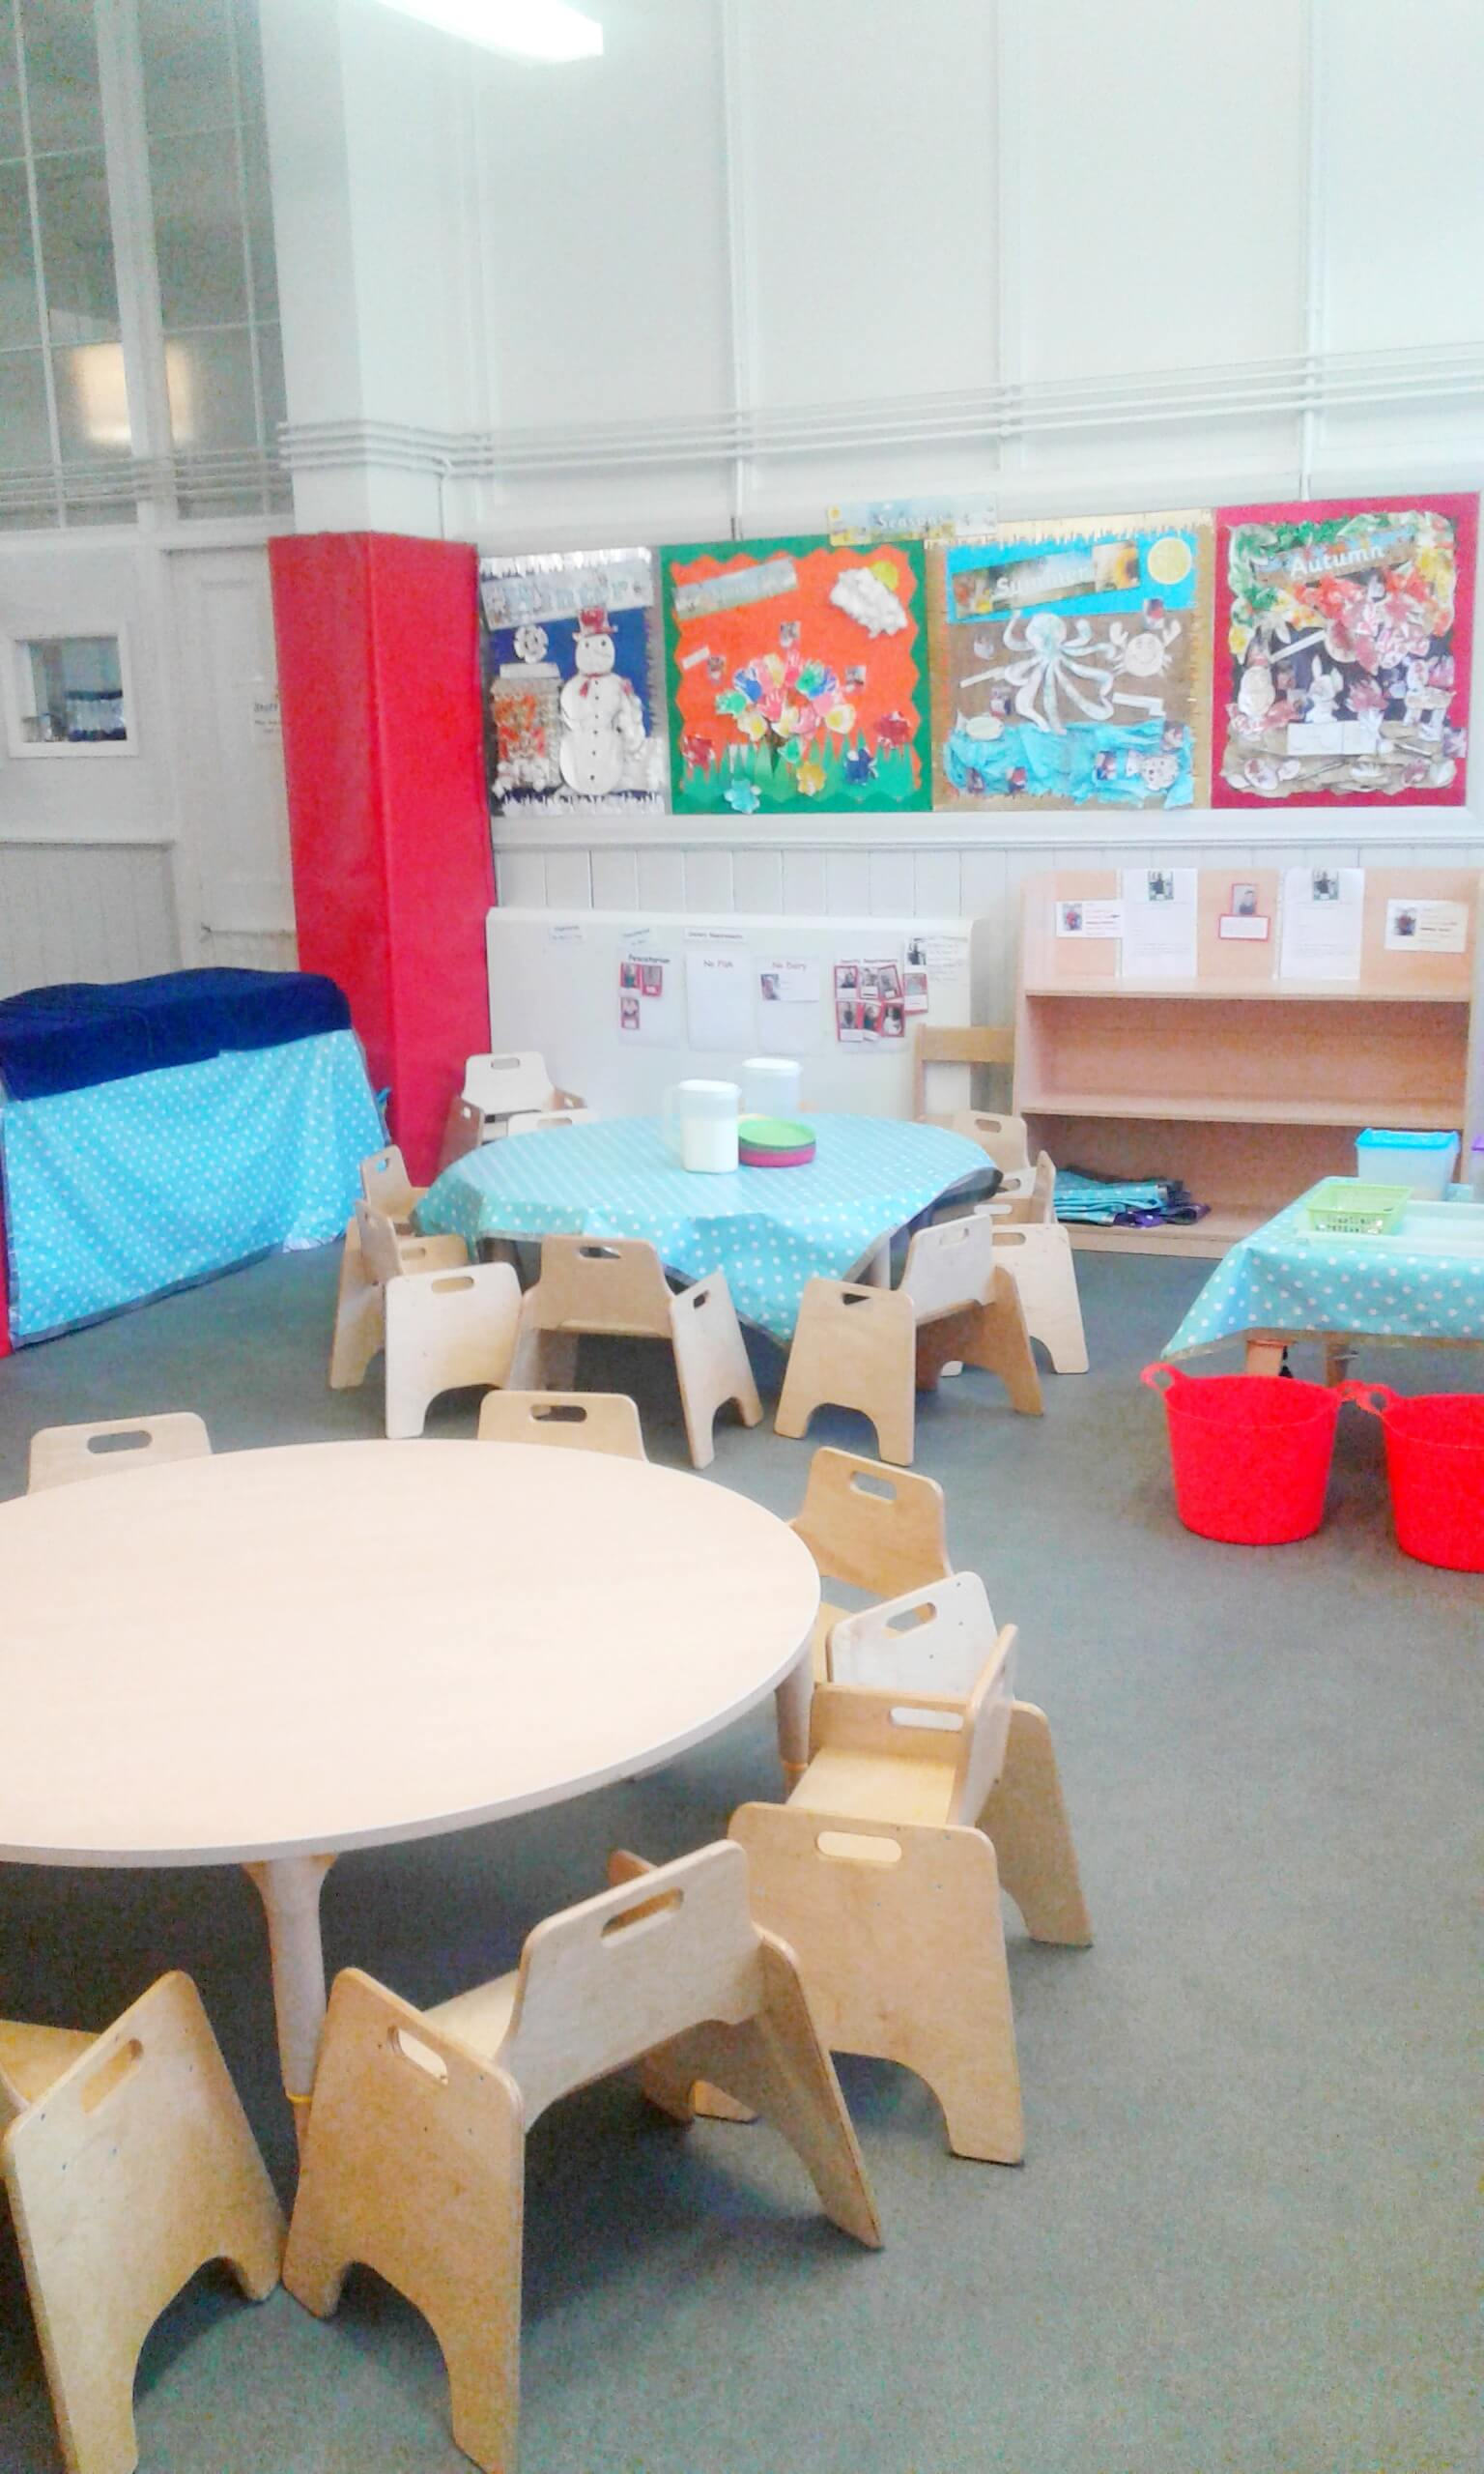 Toddler room, children's chairs